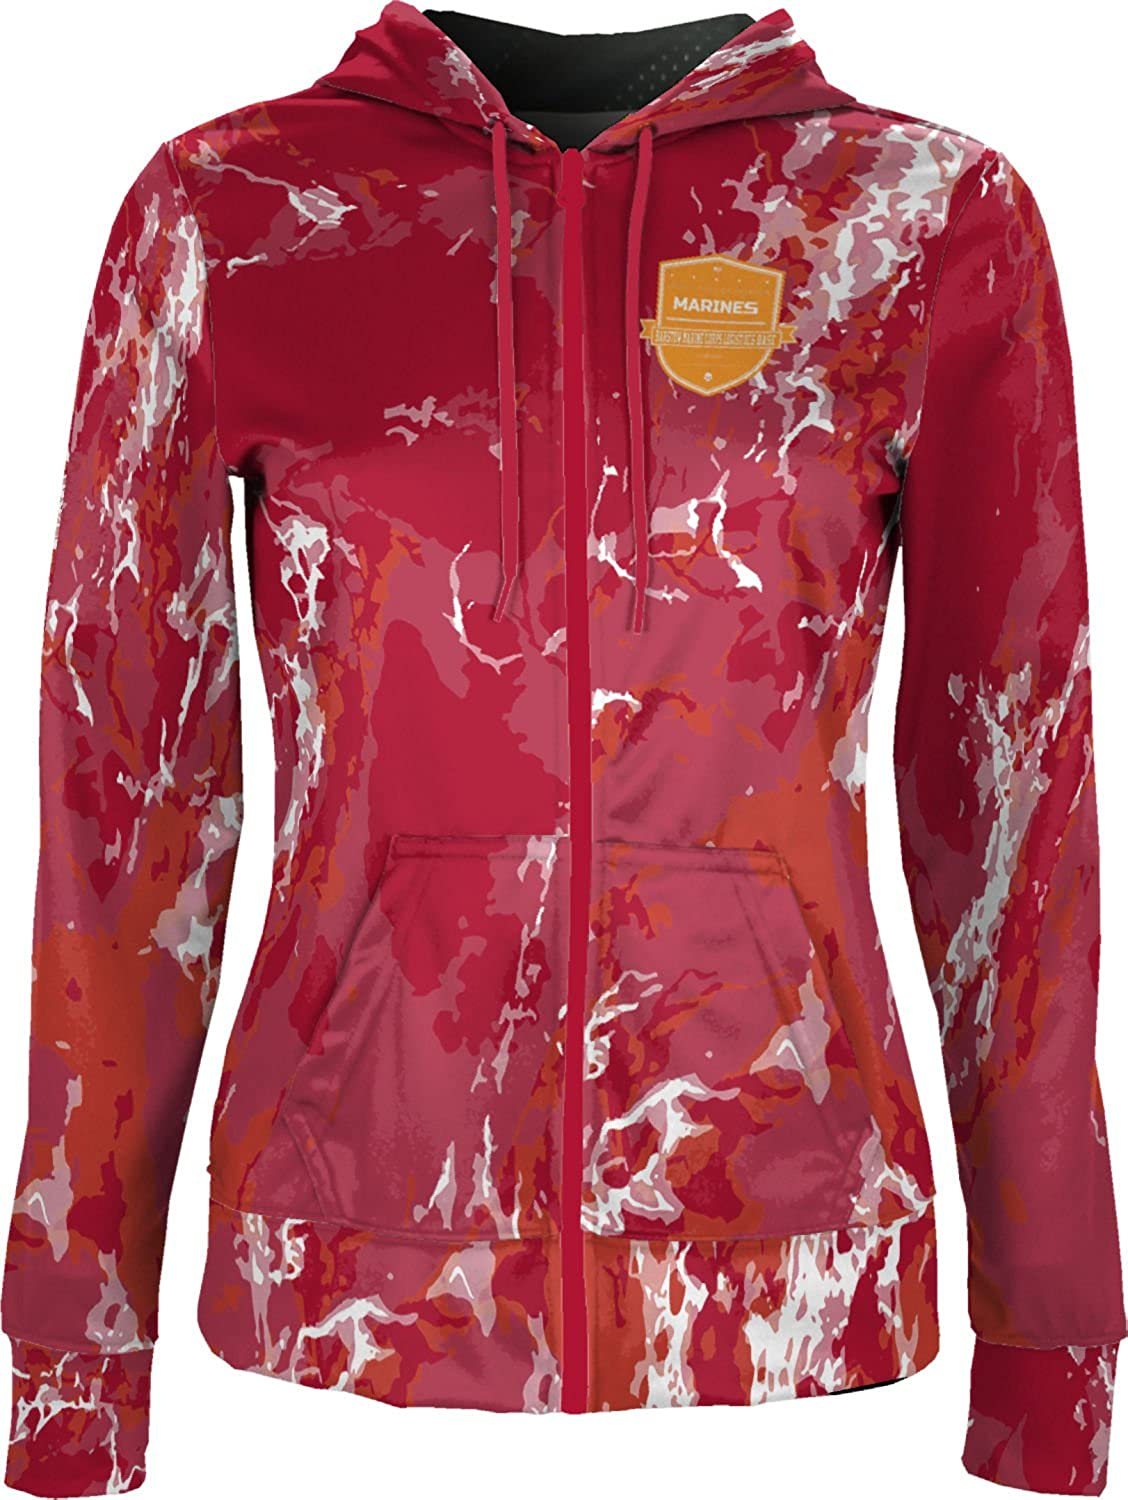 Women's Barstow Marine Corps Logistics Base Military Marble Fullzip Hoodie